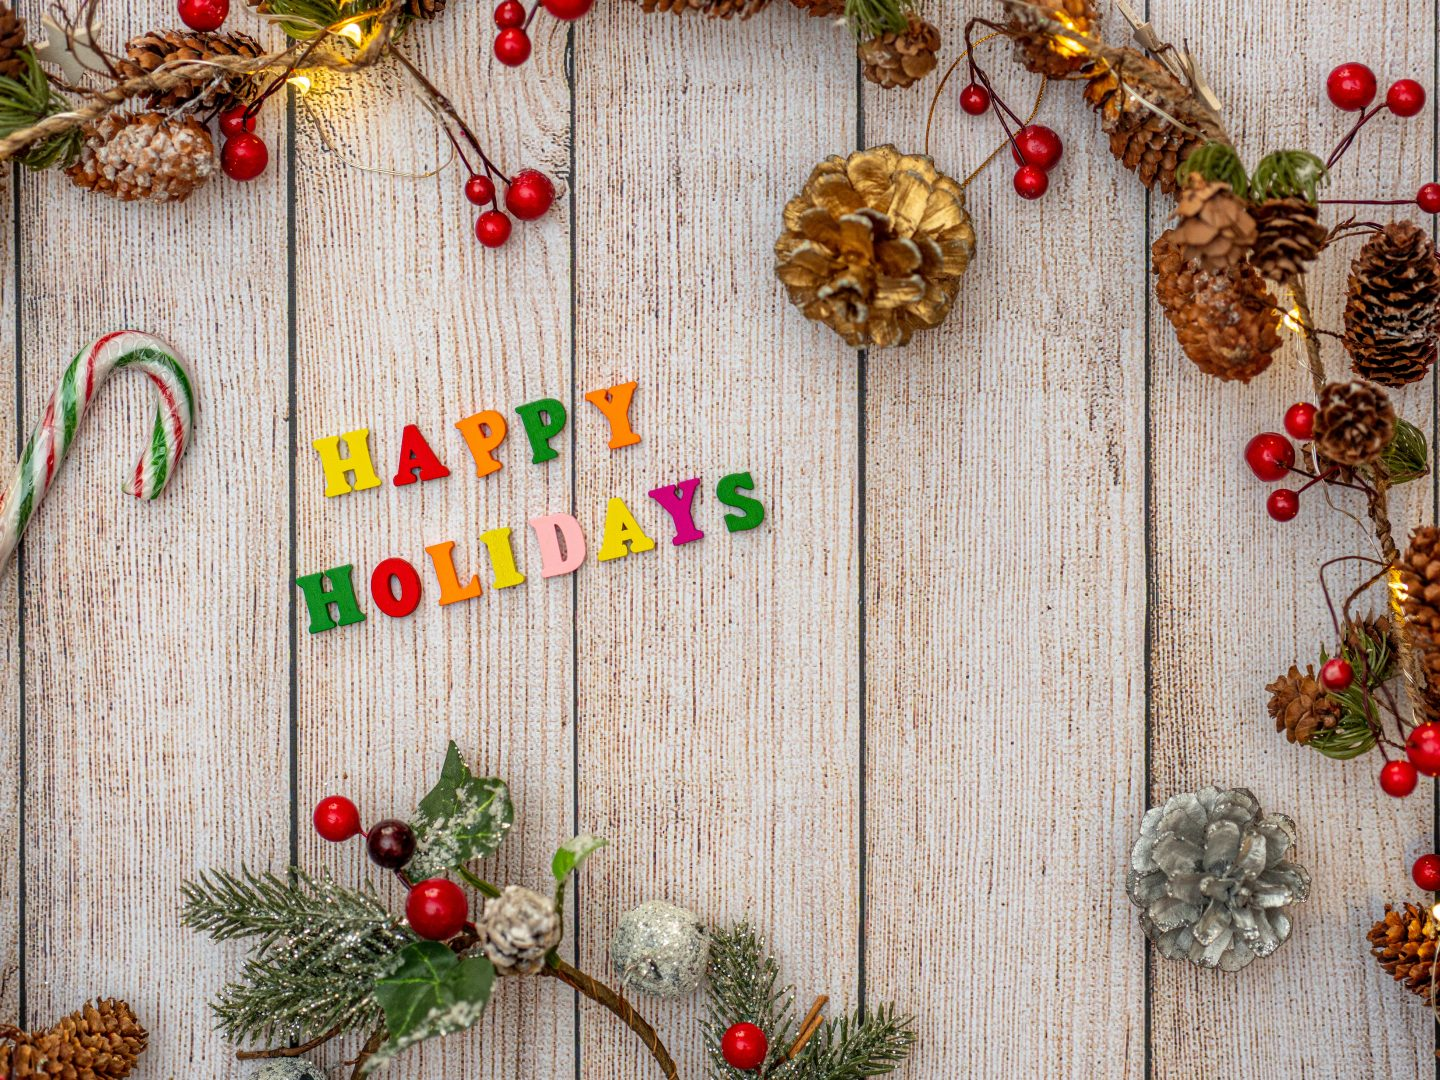 multicolored Happy Holidays wall ornament